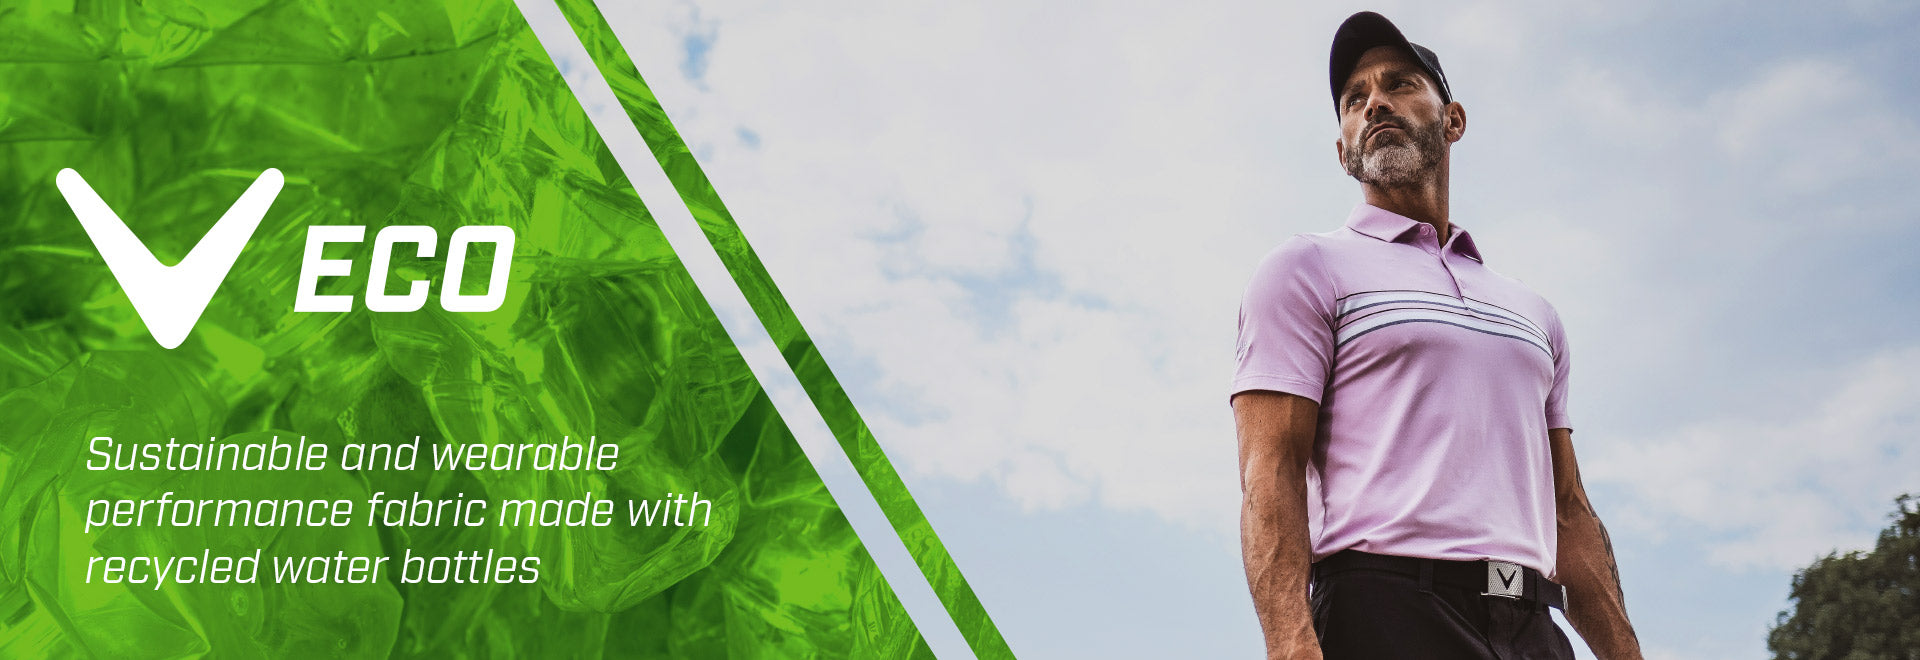 Eco - Sustainable Apparel